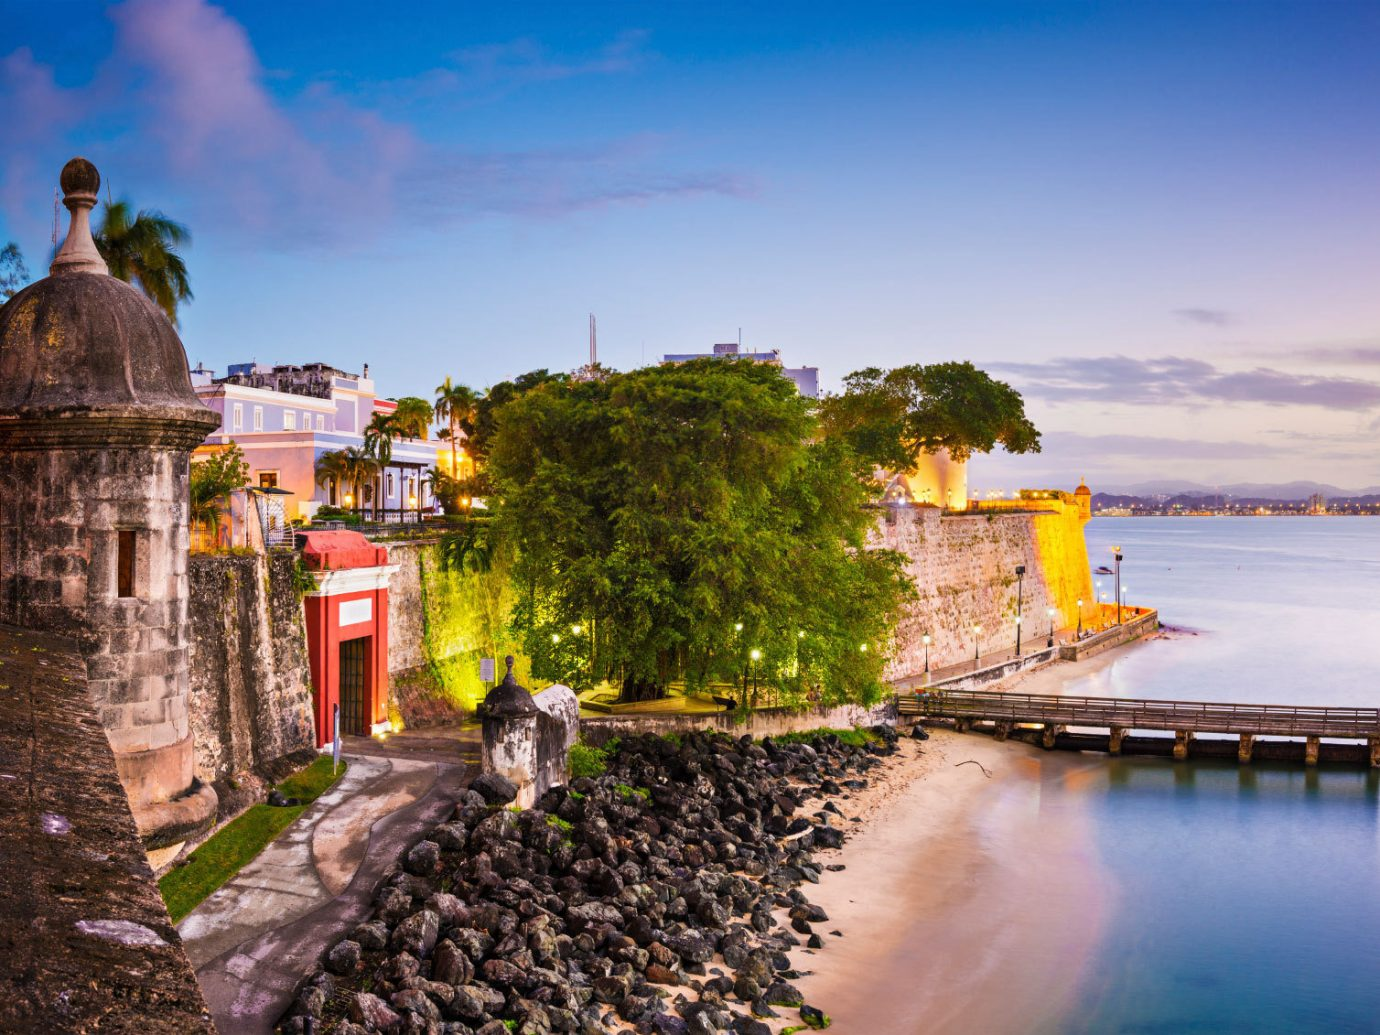 Romance Trip Ideas outdoor sky landmark water Town reflection vacation Sea tourism morning Coast evening landscape cityscape sunlight tower Sunset travel waterway castle Ruins